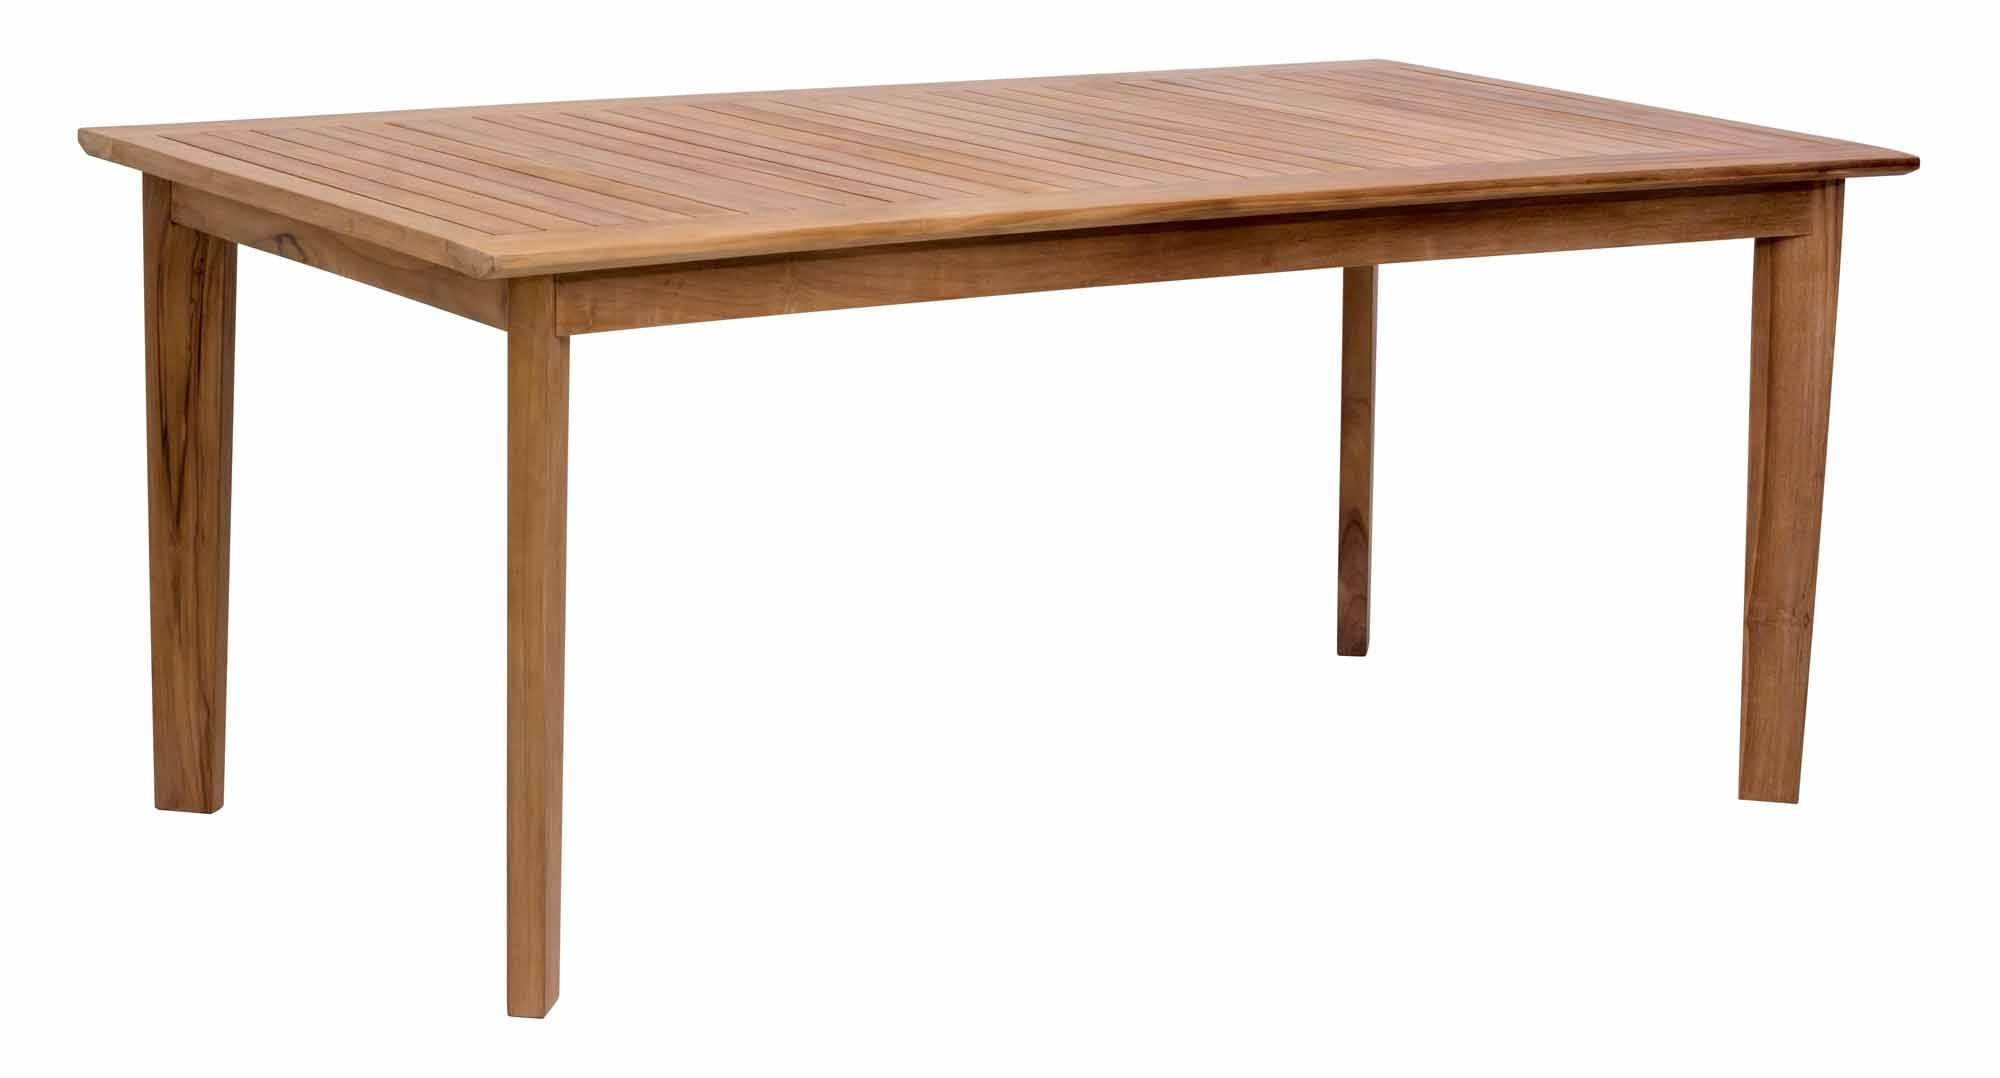 Nautical dining table natural by zuo modern for Nautical kitchen table